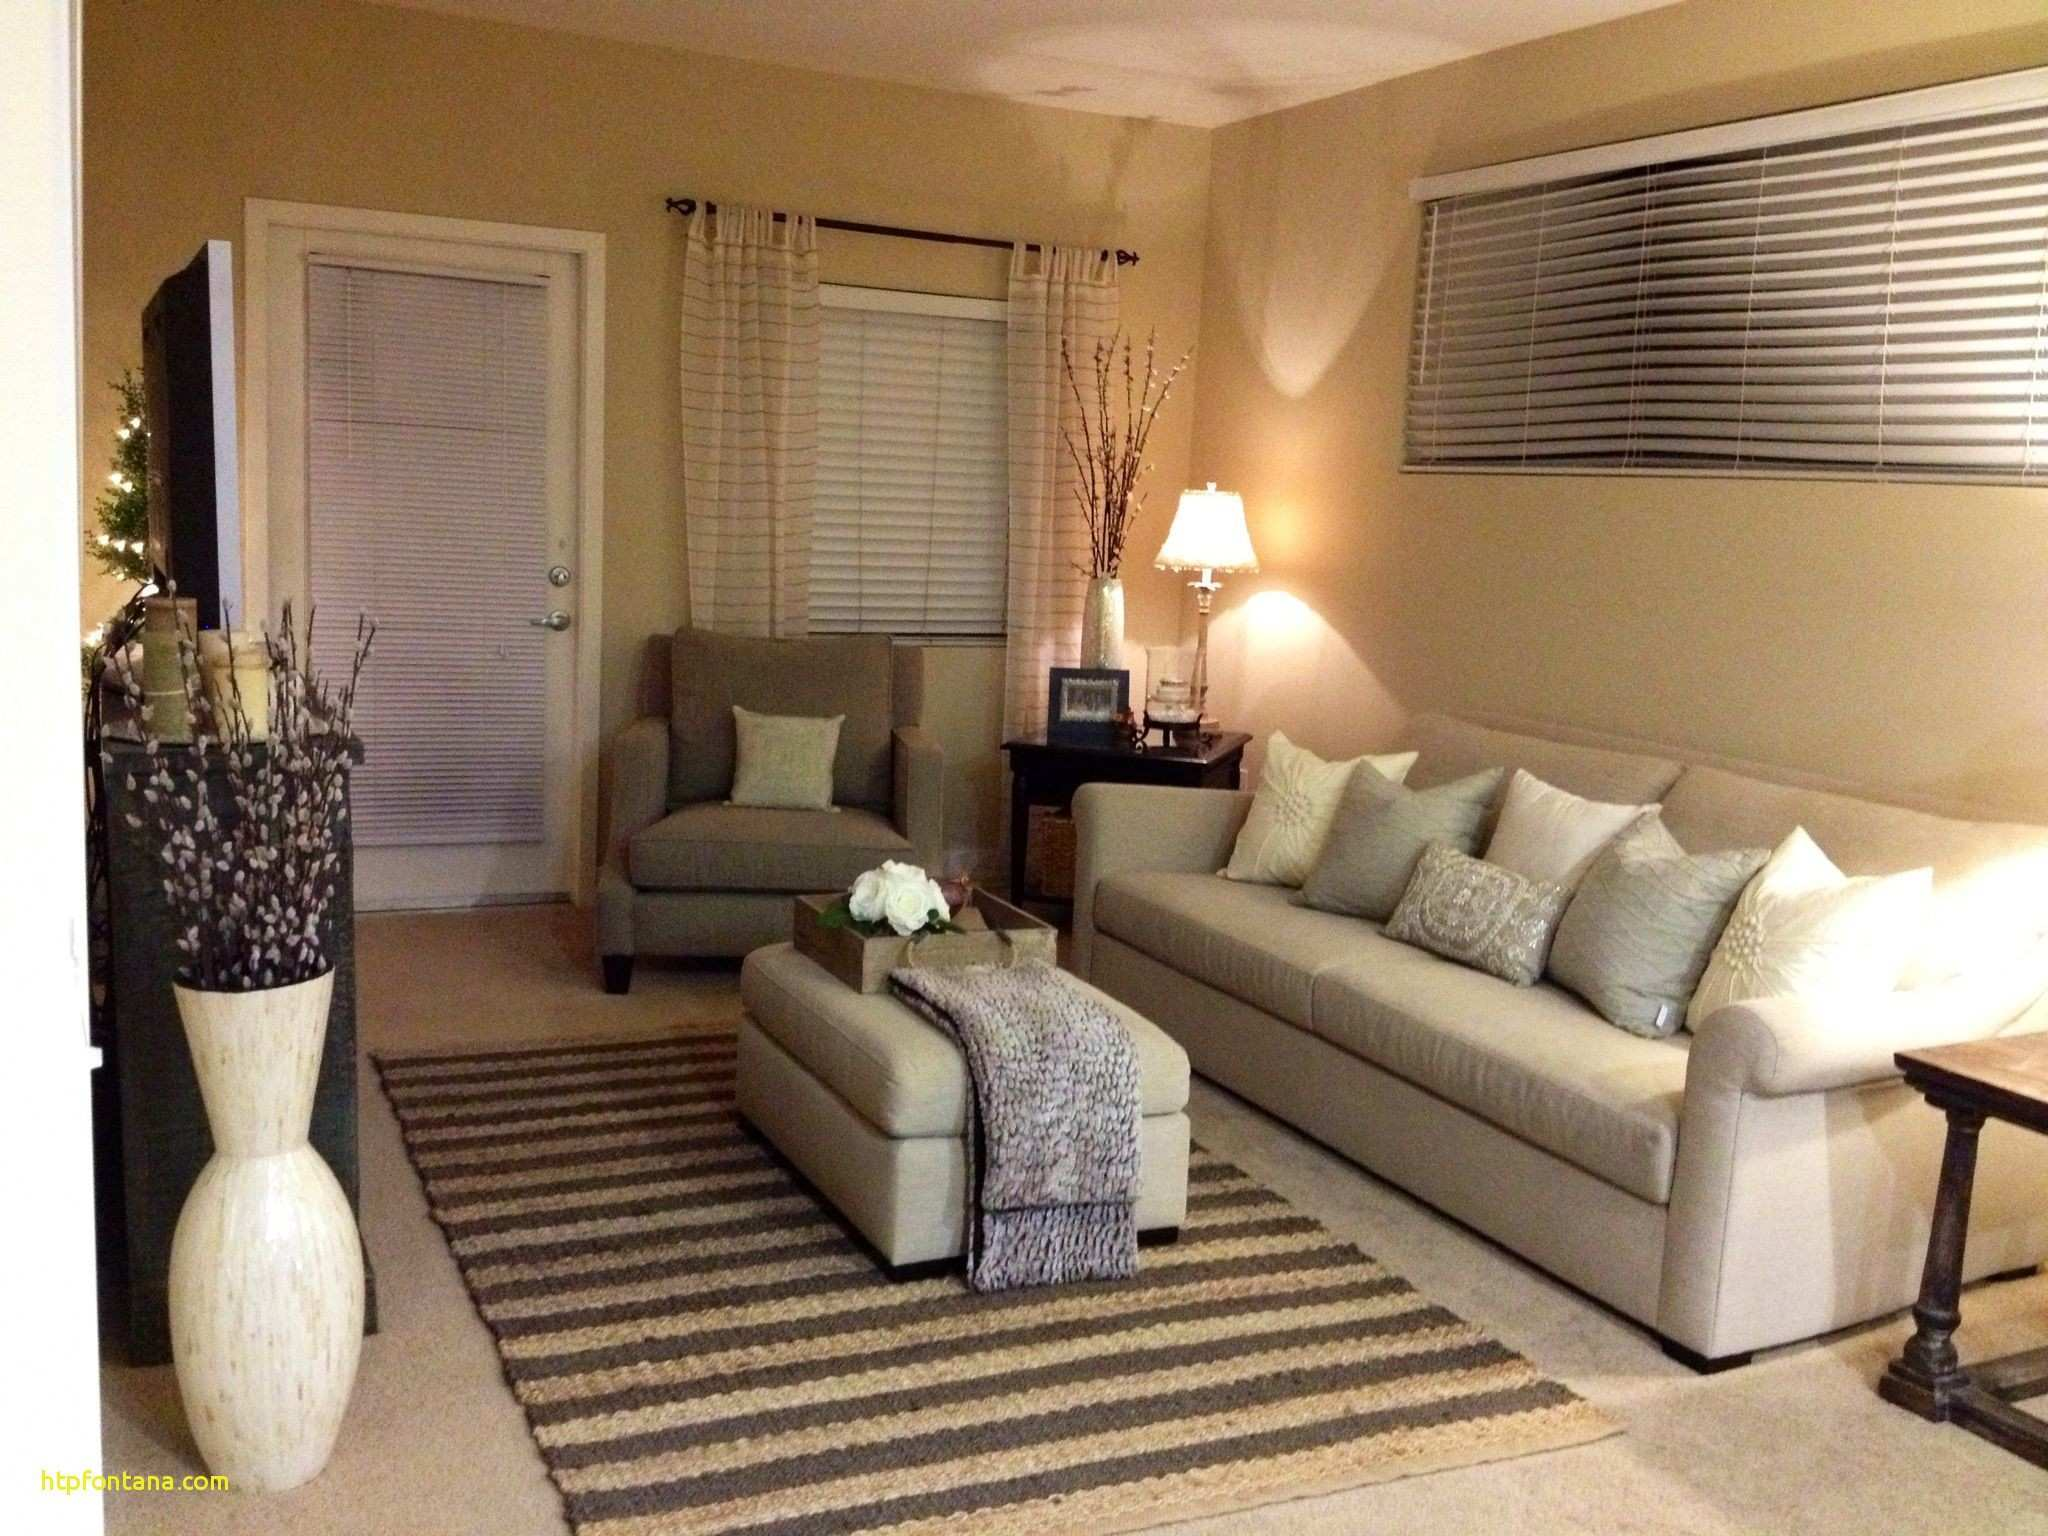 Living Room Decor Tan Walls Luxury Small Rooms Spaces Decorating